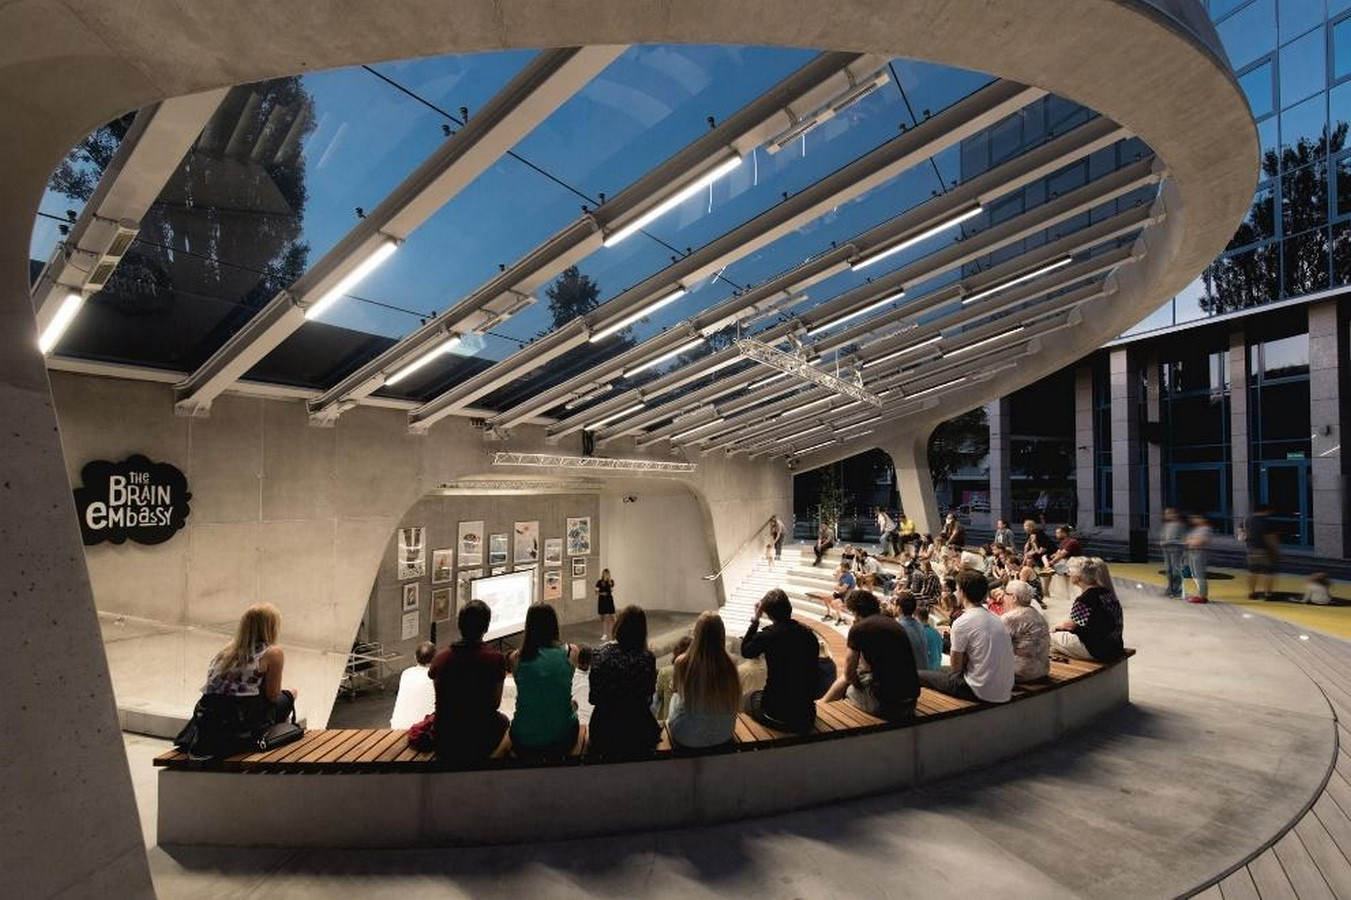 A concrete amphitheater as an 'open, democratic space' in Warsaw designed by Lina - Sheet9